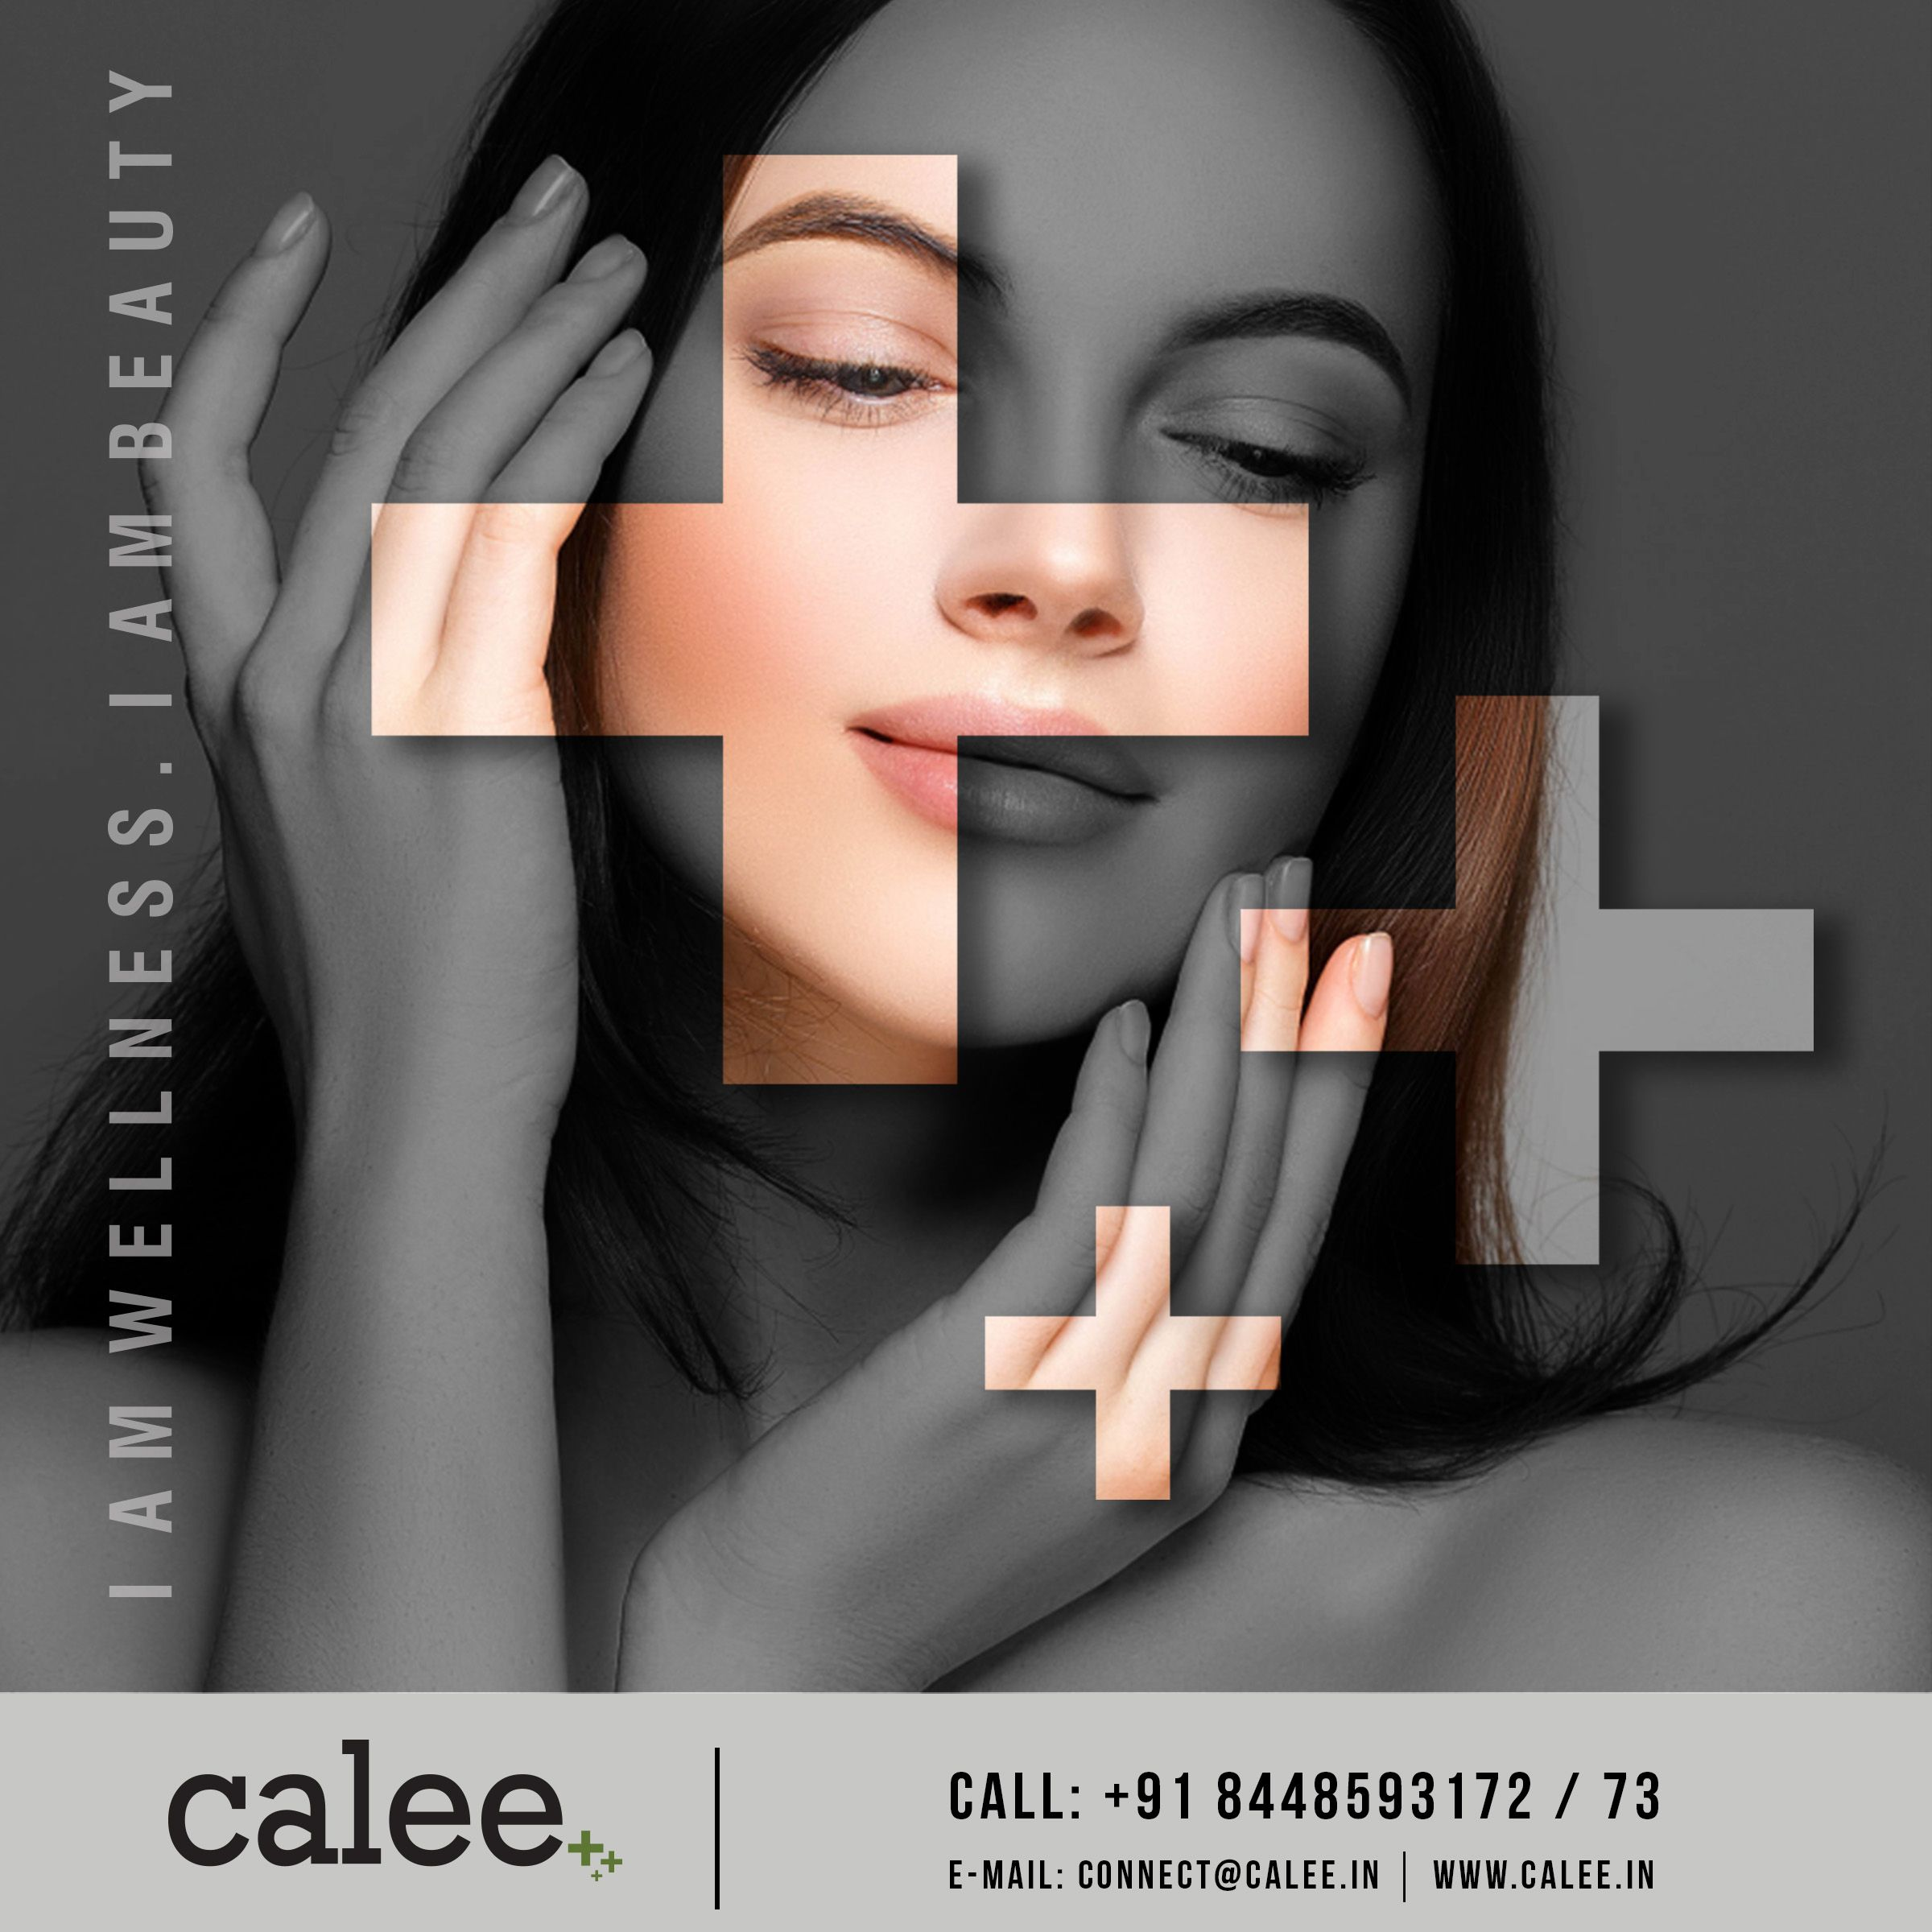 Clinic Calee Dermatologist Skin Care Skin Clinic Laser Skin Treatment